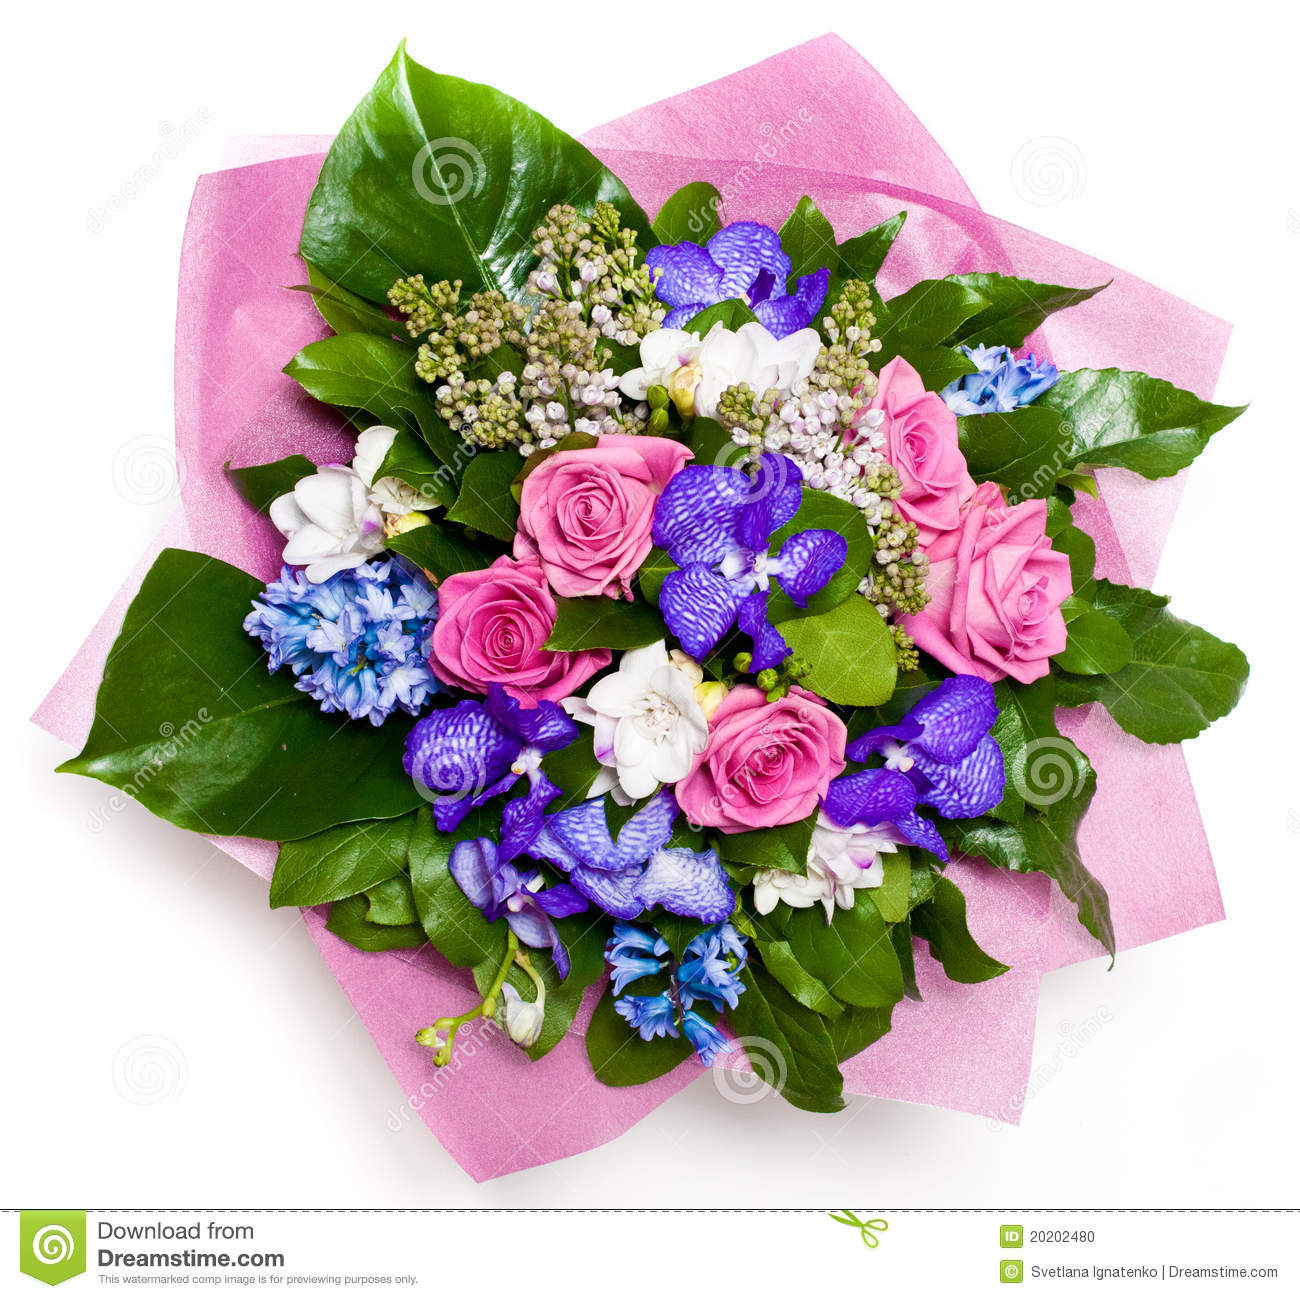 Bunch of flowers images download graphic library library Bunch of flowers images download - ClipartFest graphic library library